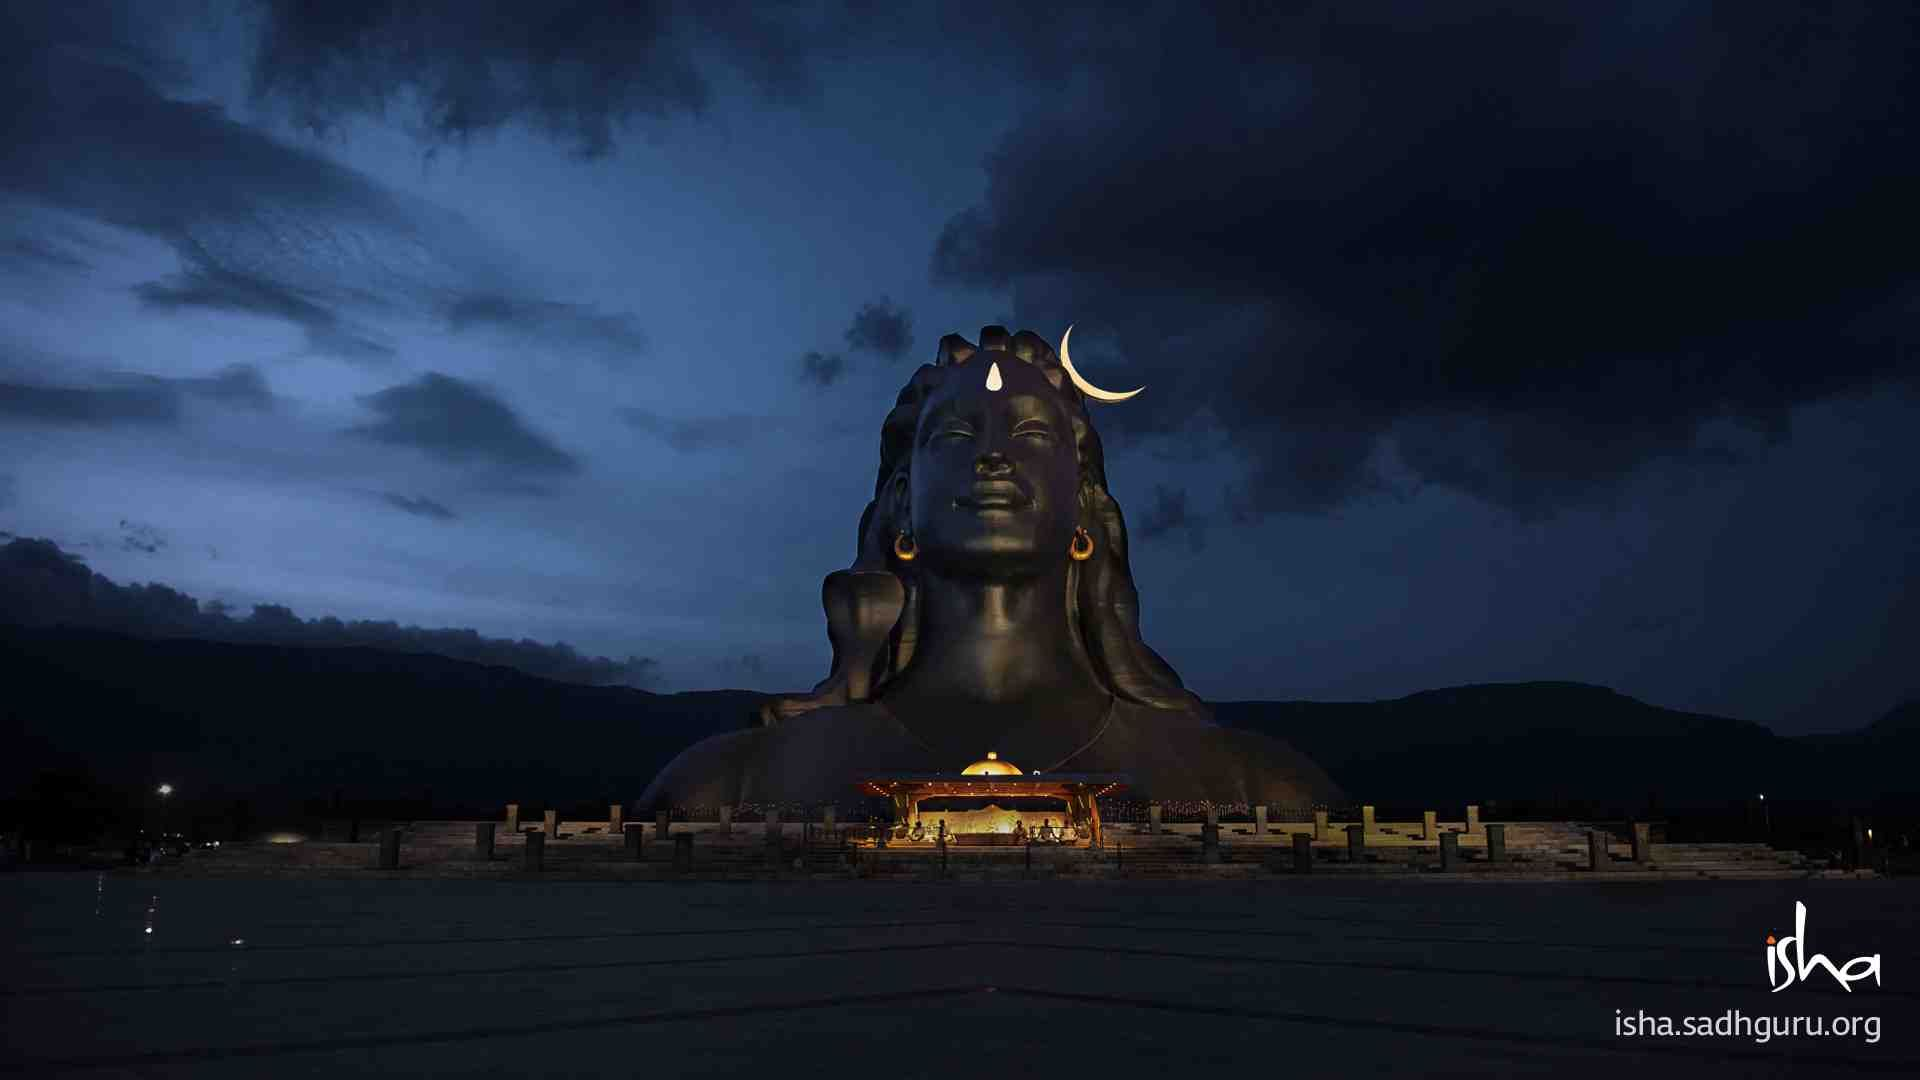 60 Shiva Adiyogi Wallpapers Hd Free Download For Mobile And Desktop In 2020 Shiva Wallpaper High Quality Images